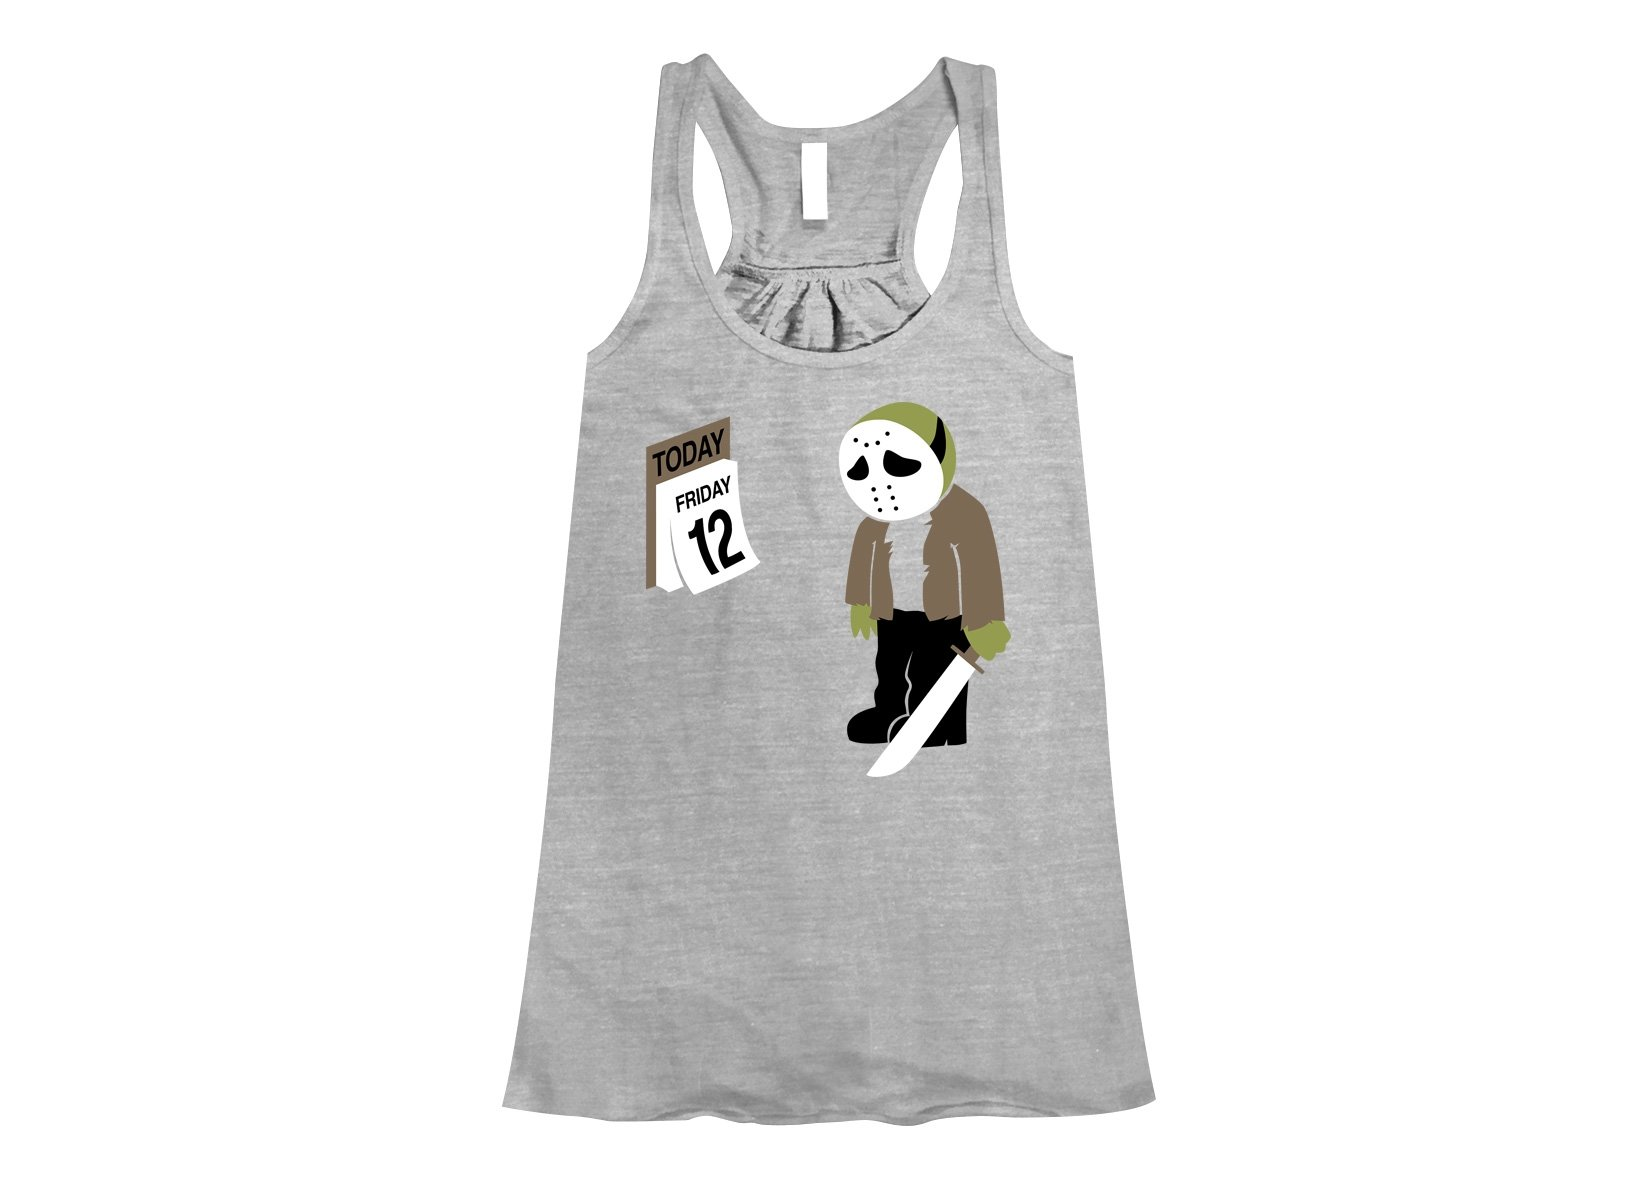 Friday the 12th on Womens Tanks T-Shirt